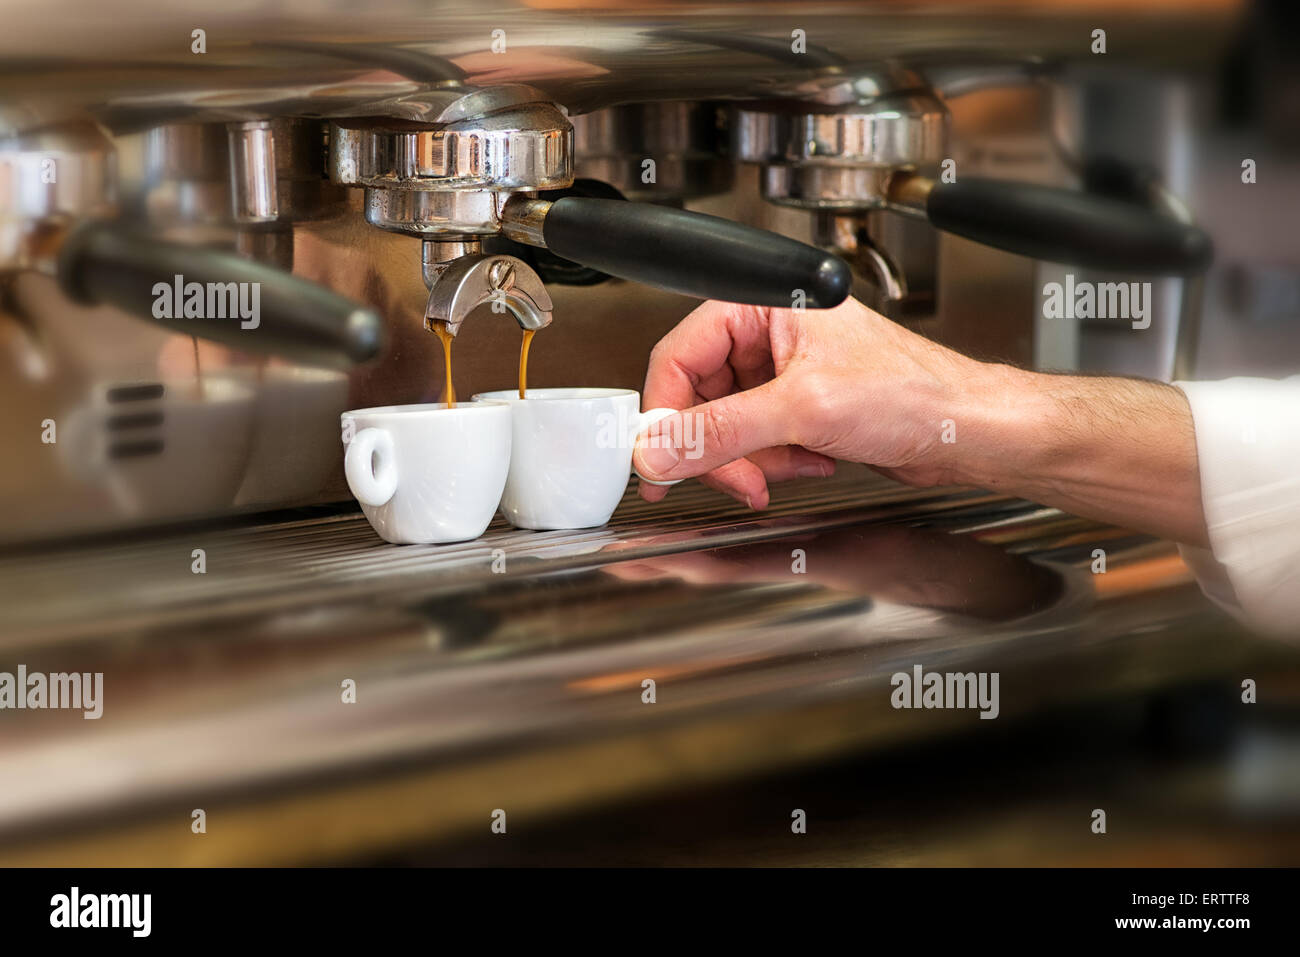 Close up view of the hand of a man working in a coffee house preparing espresso coffee - Stock Image